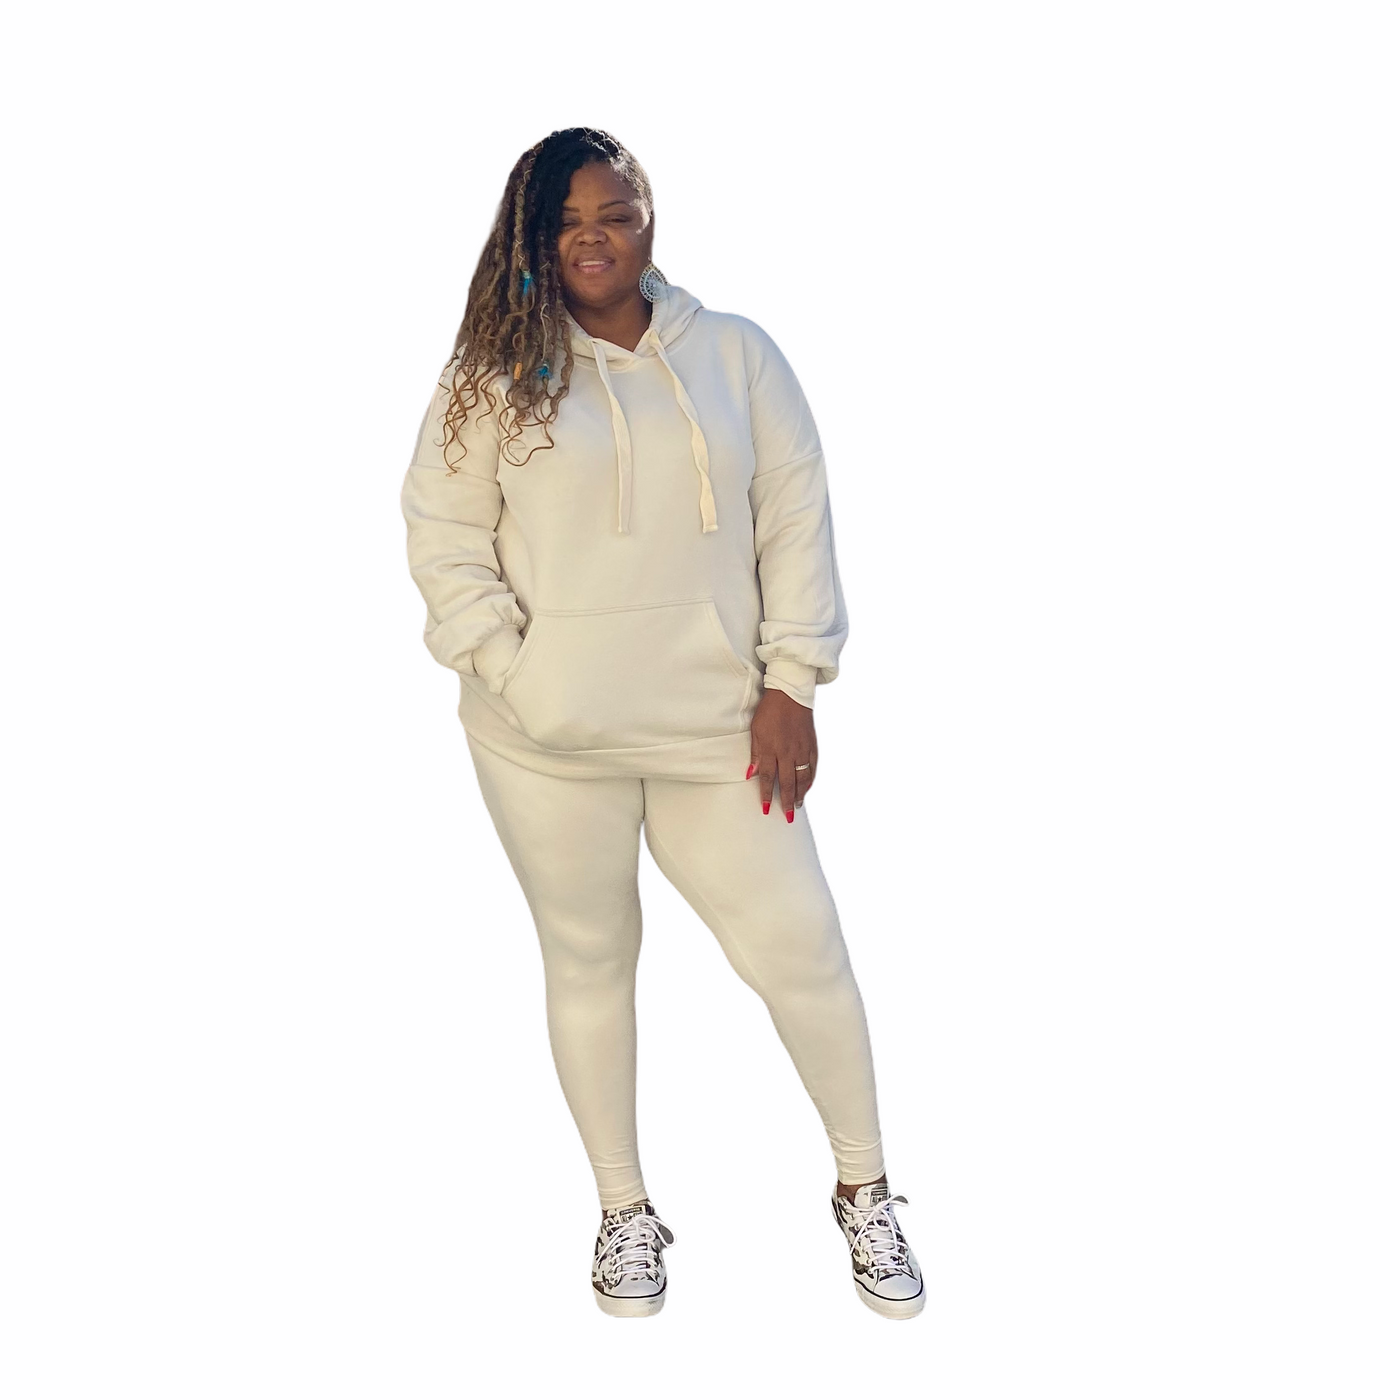 The Bone Hooded Sweatshirt Legging Set - Bone / 2X - Curvy